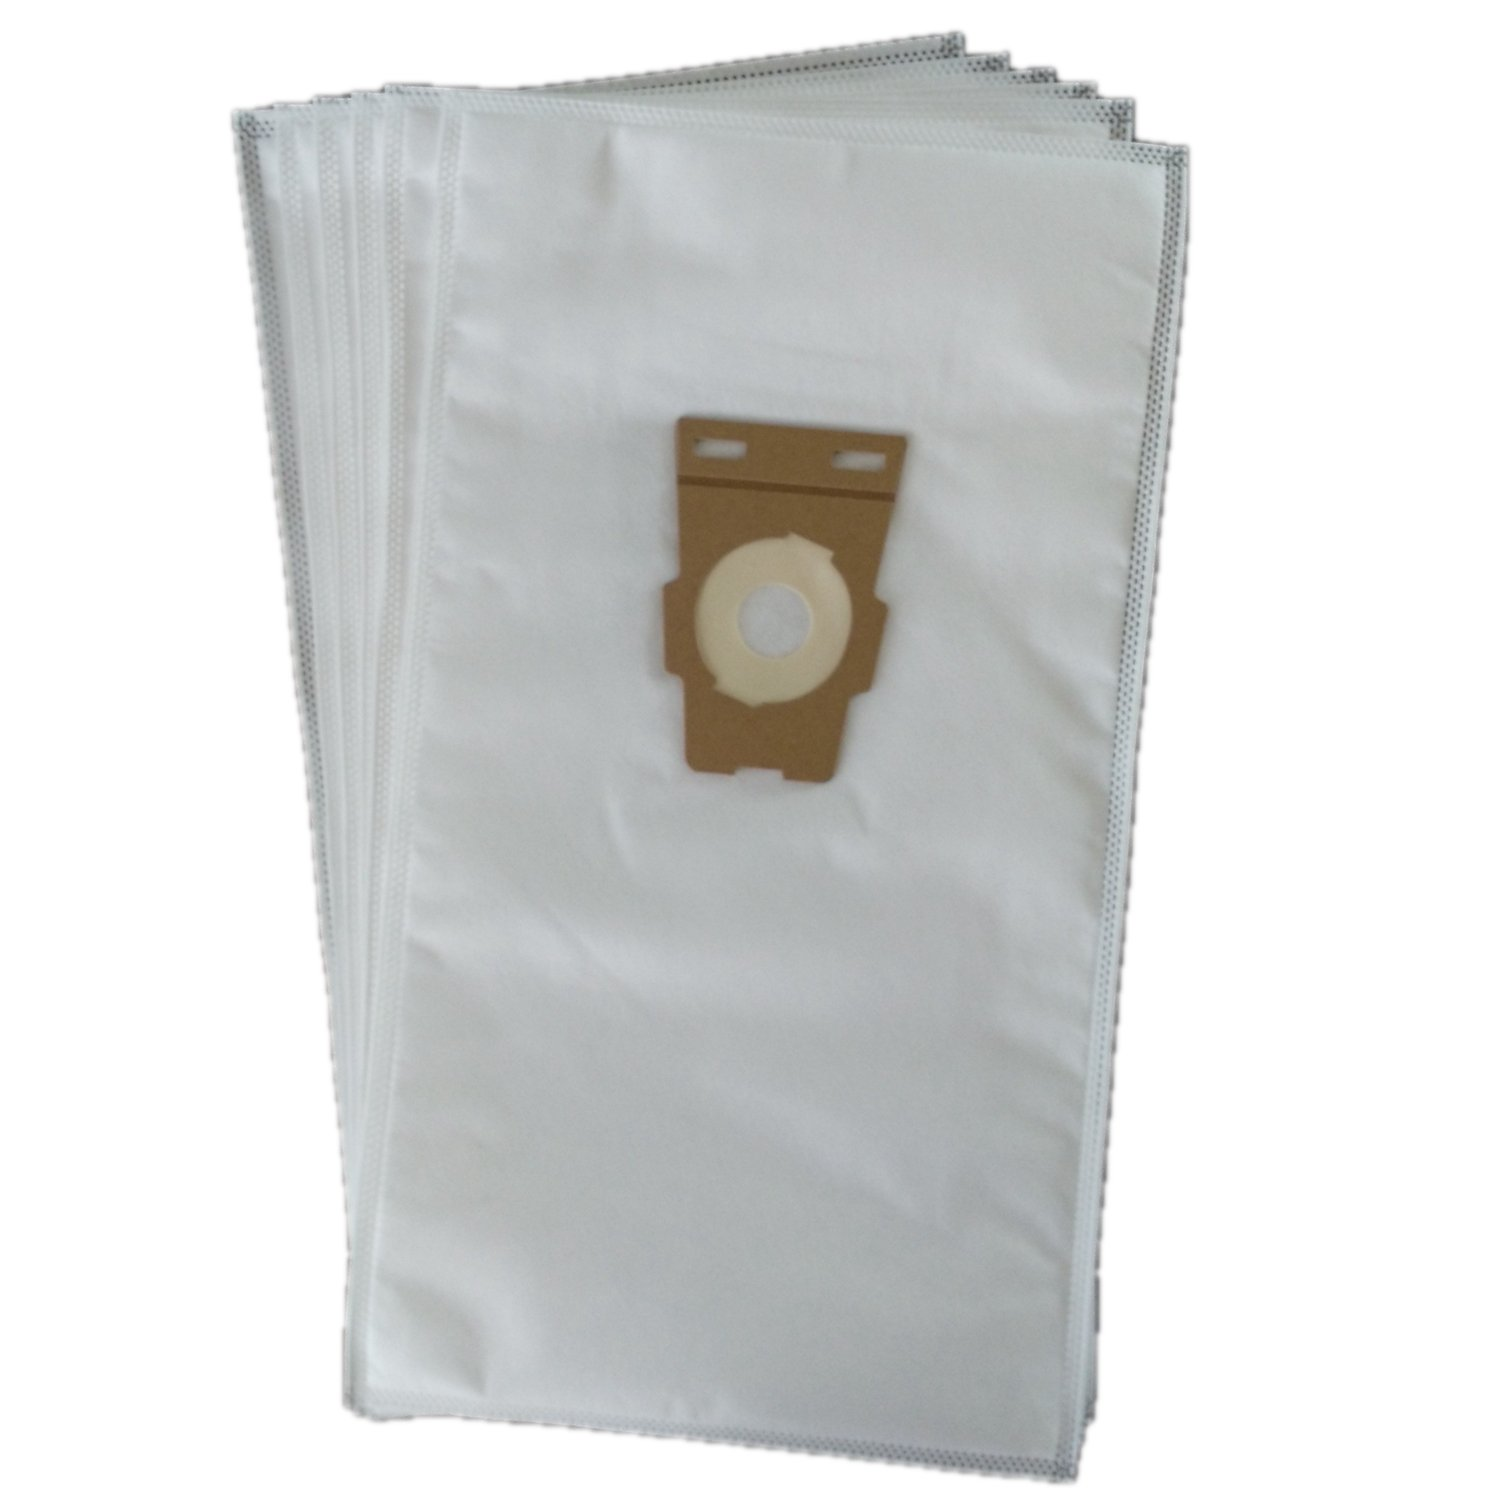 10 Clean Fairy Vacuum Bags Fit for Kirby Style F HEPA Filtration bags for ALL Sentria II Models- replacement Kirby Part#204808 (10 Bags)